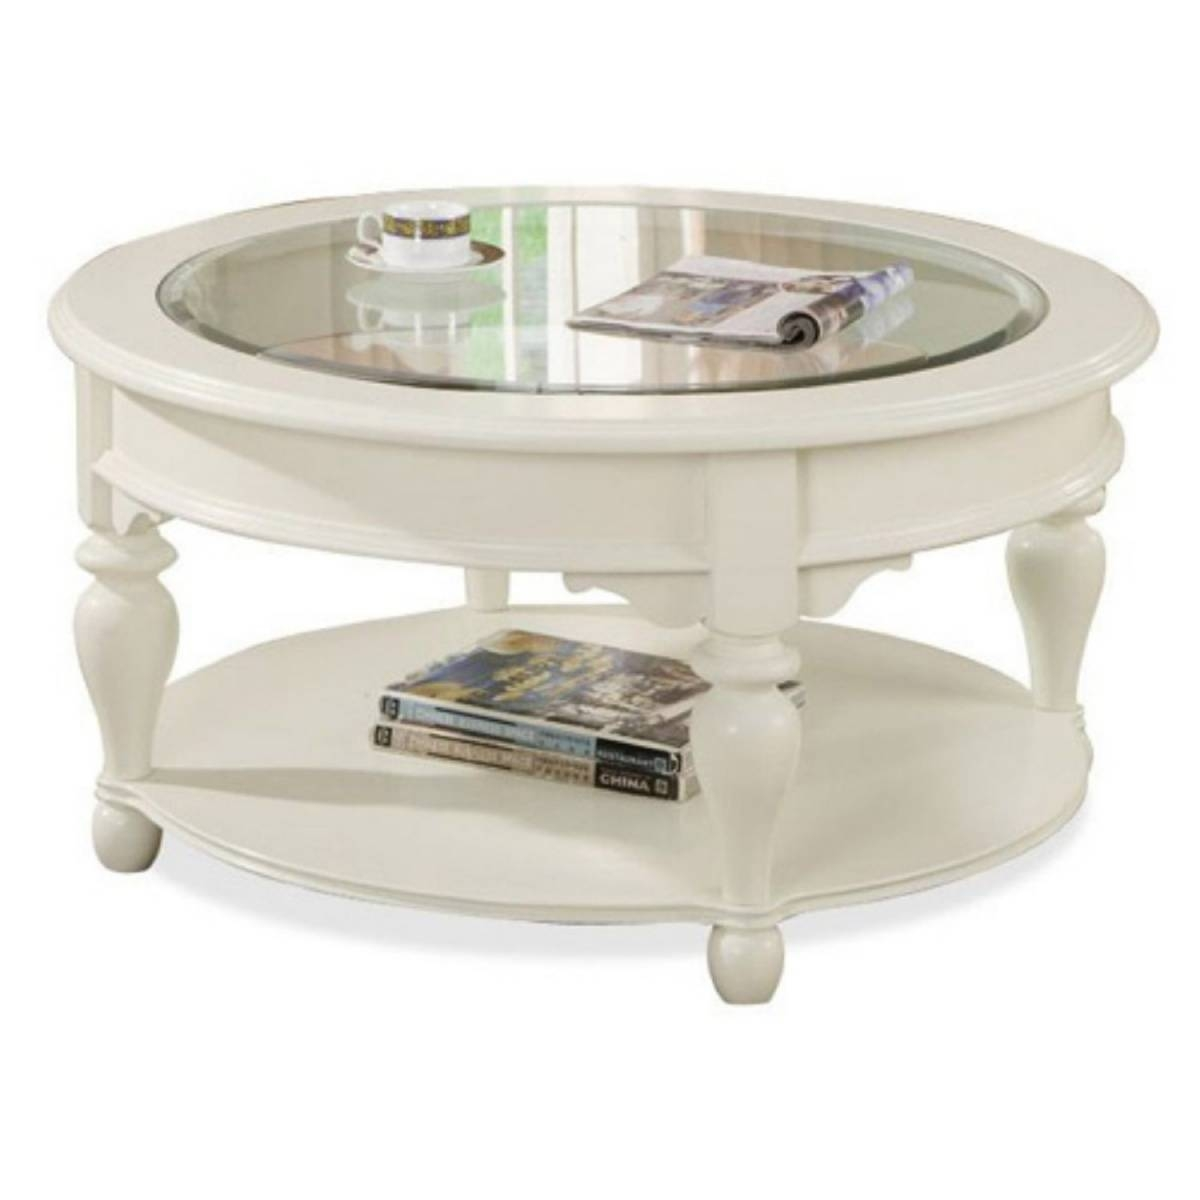 Coffee Table: Astonishing Round Coffee Table With Storage Designs intended for Glass Coffee Tables With Storage (Image 8 of 30)